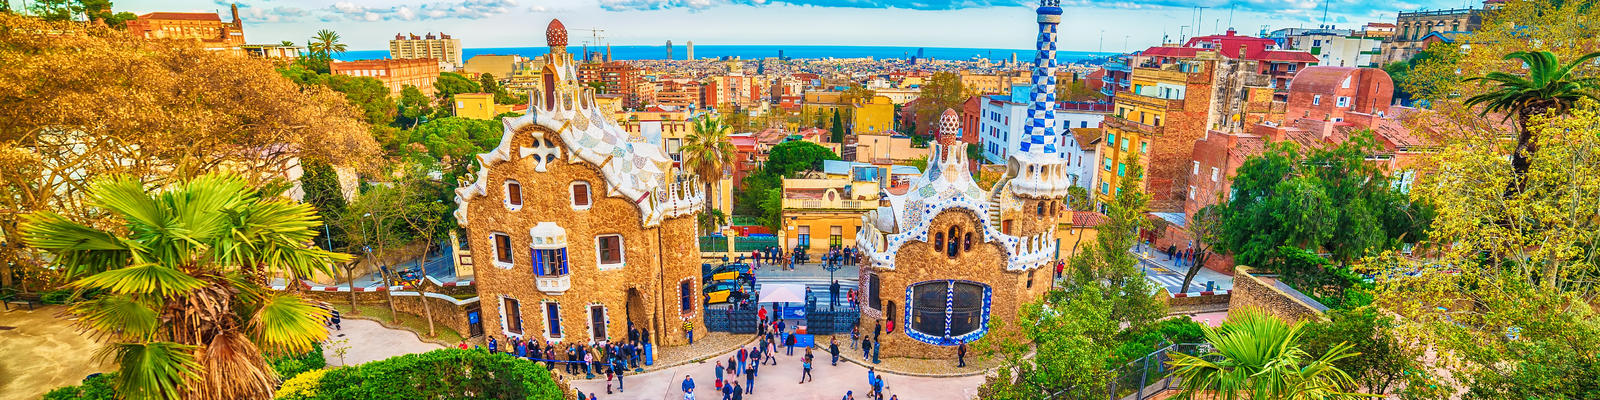 Image: Aerial view of Park Guell, designed by Antoni Gaudi, Barcelona, Catalonia, Spain (Photo: krivinis/Shutterstock)